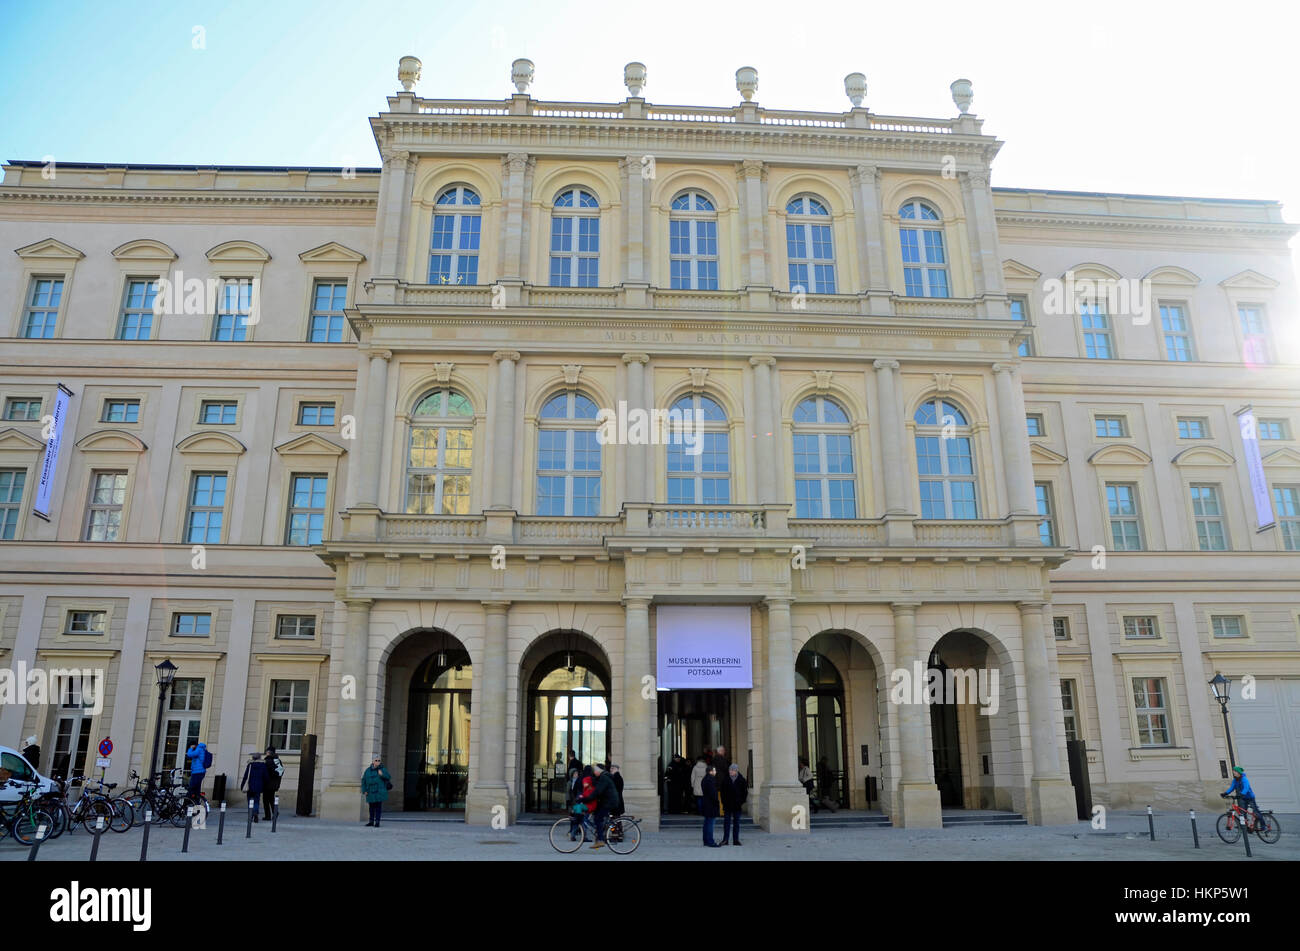 the palais barberini alter markt in potsdam museum exhibition stock photo royalty free. Black Bedroom Furniture Sets. Home Design Ideas